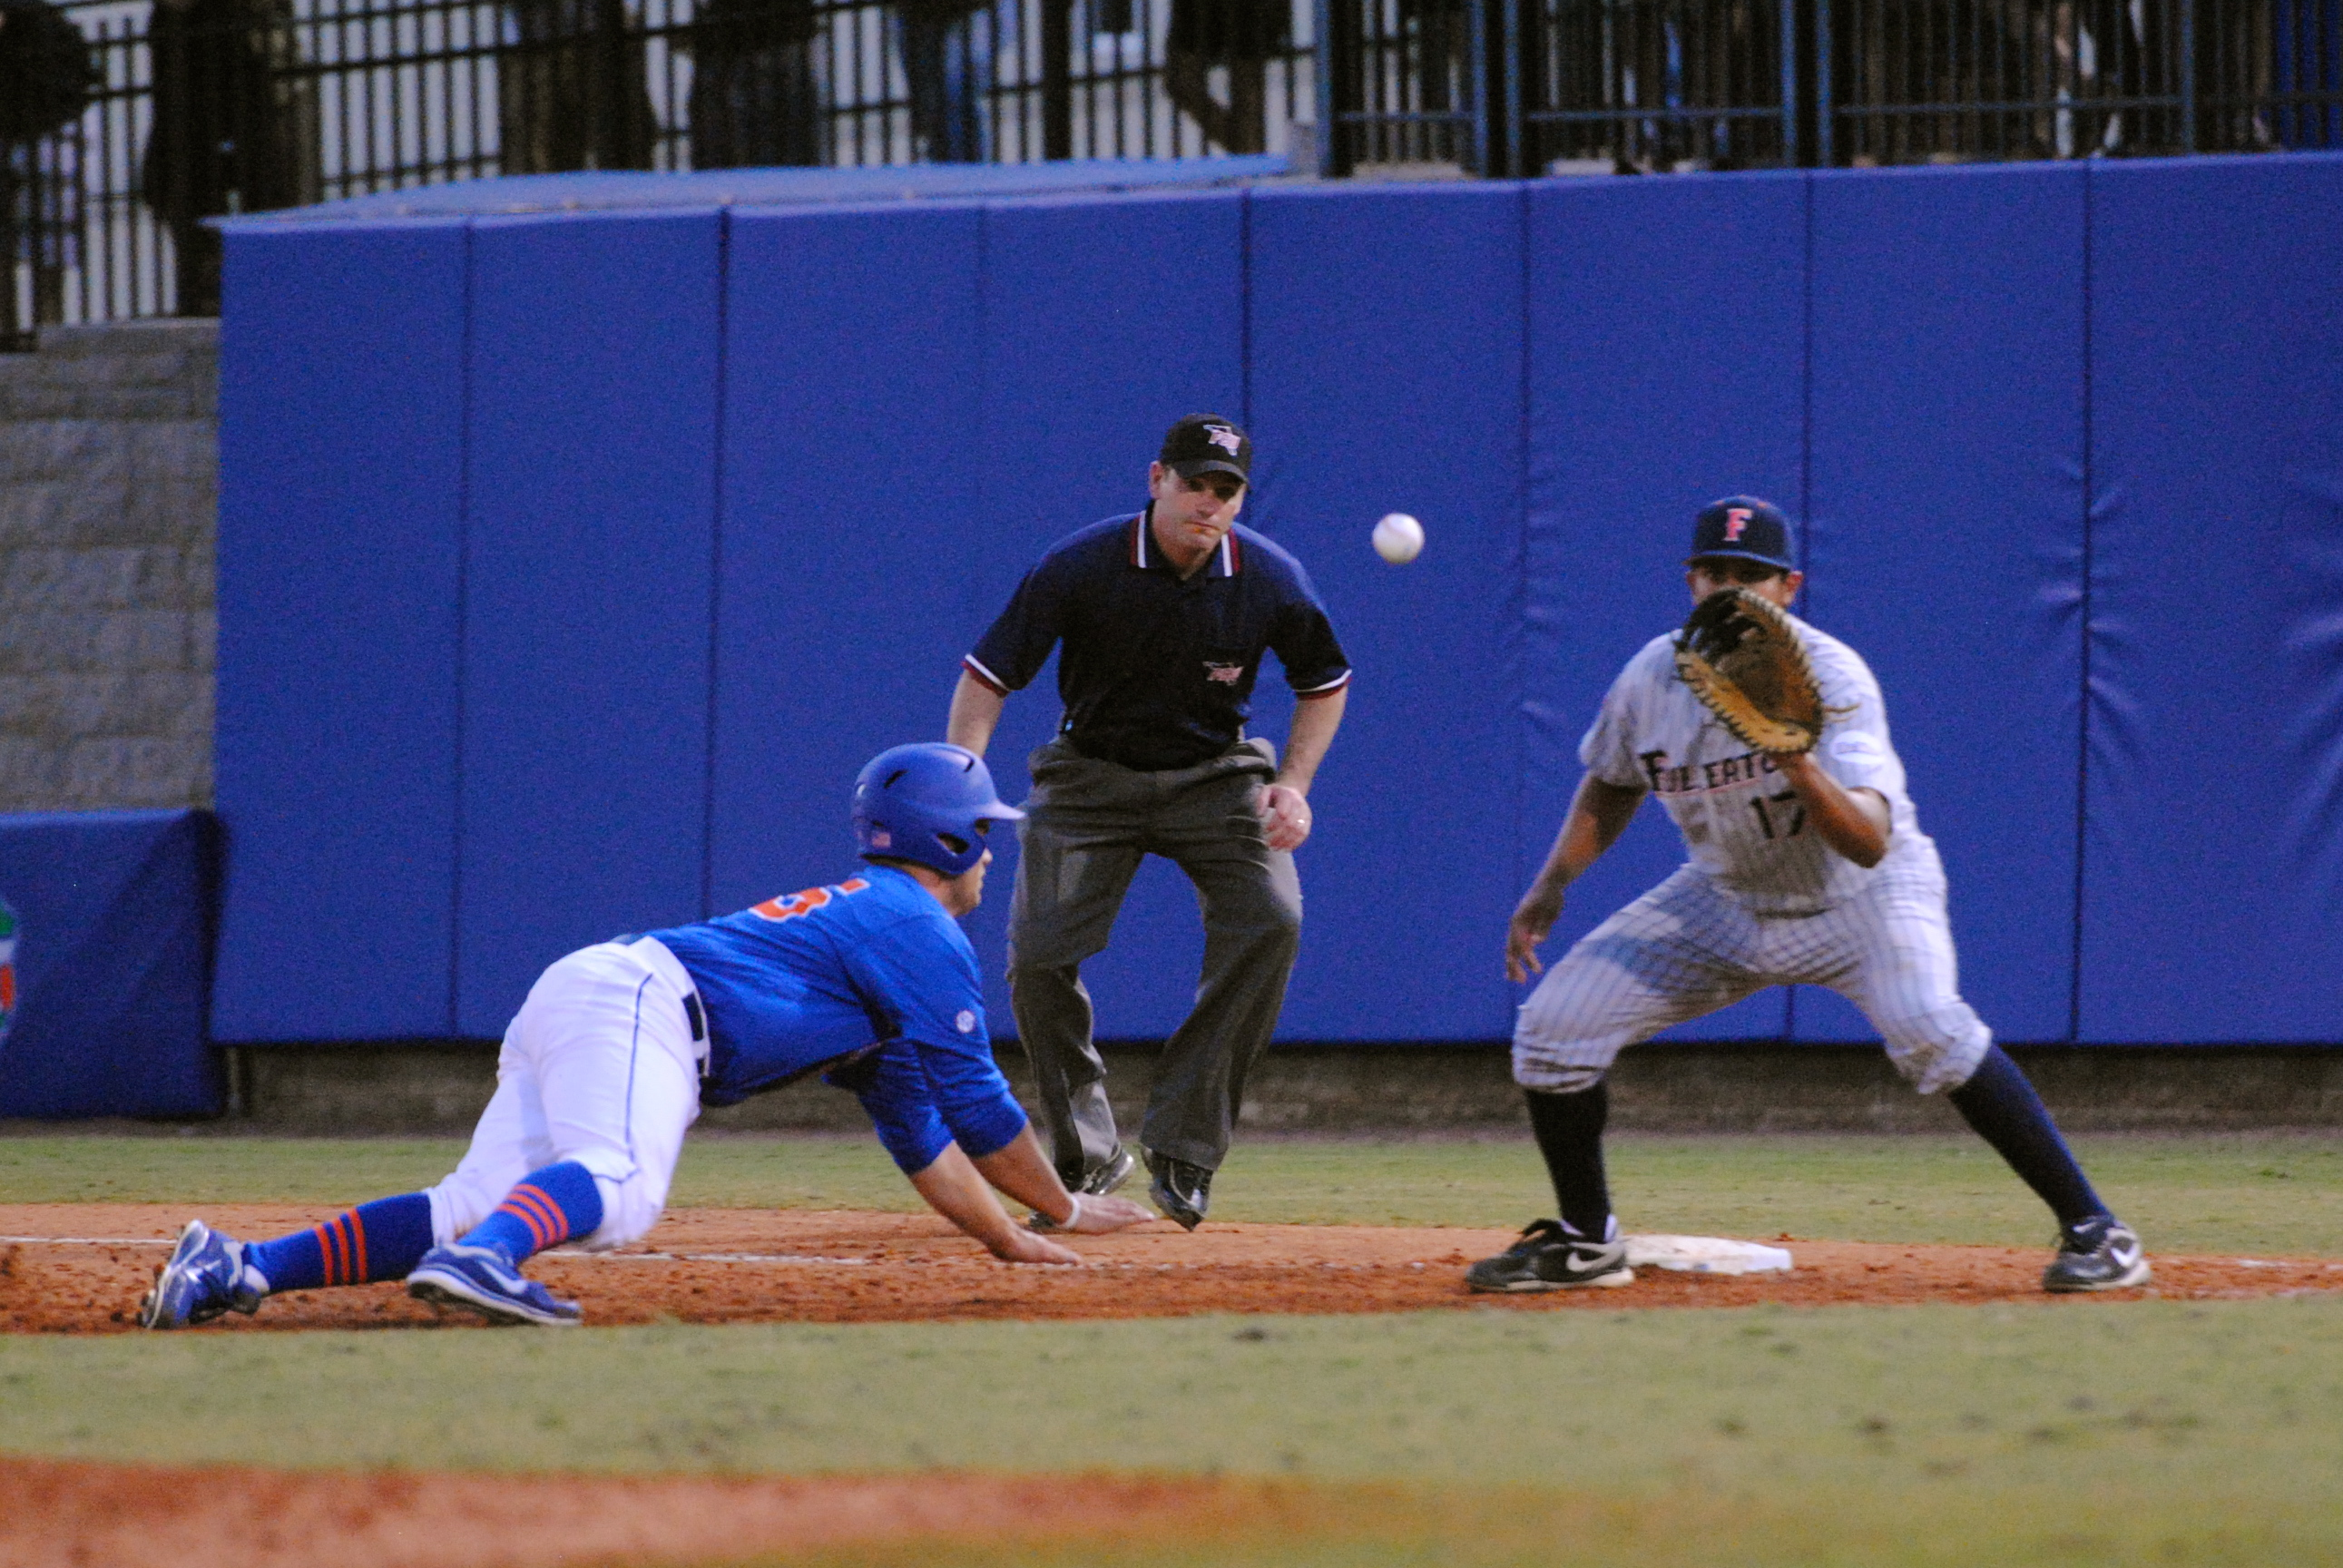 Tucker safely dives back to first base after leading off.